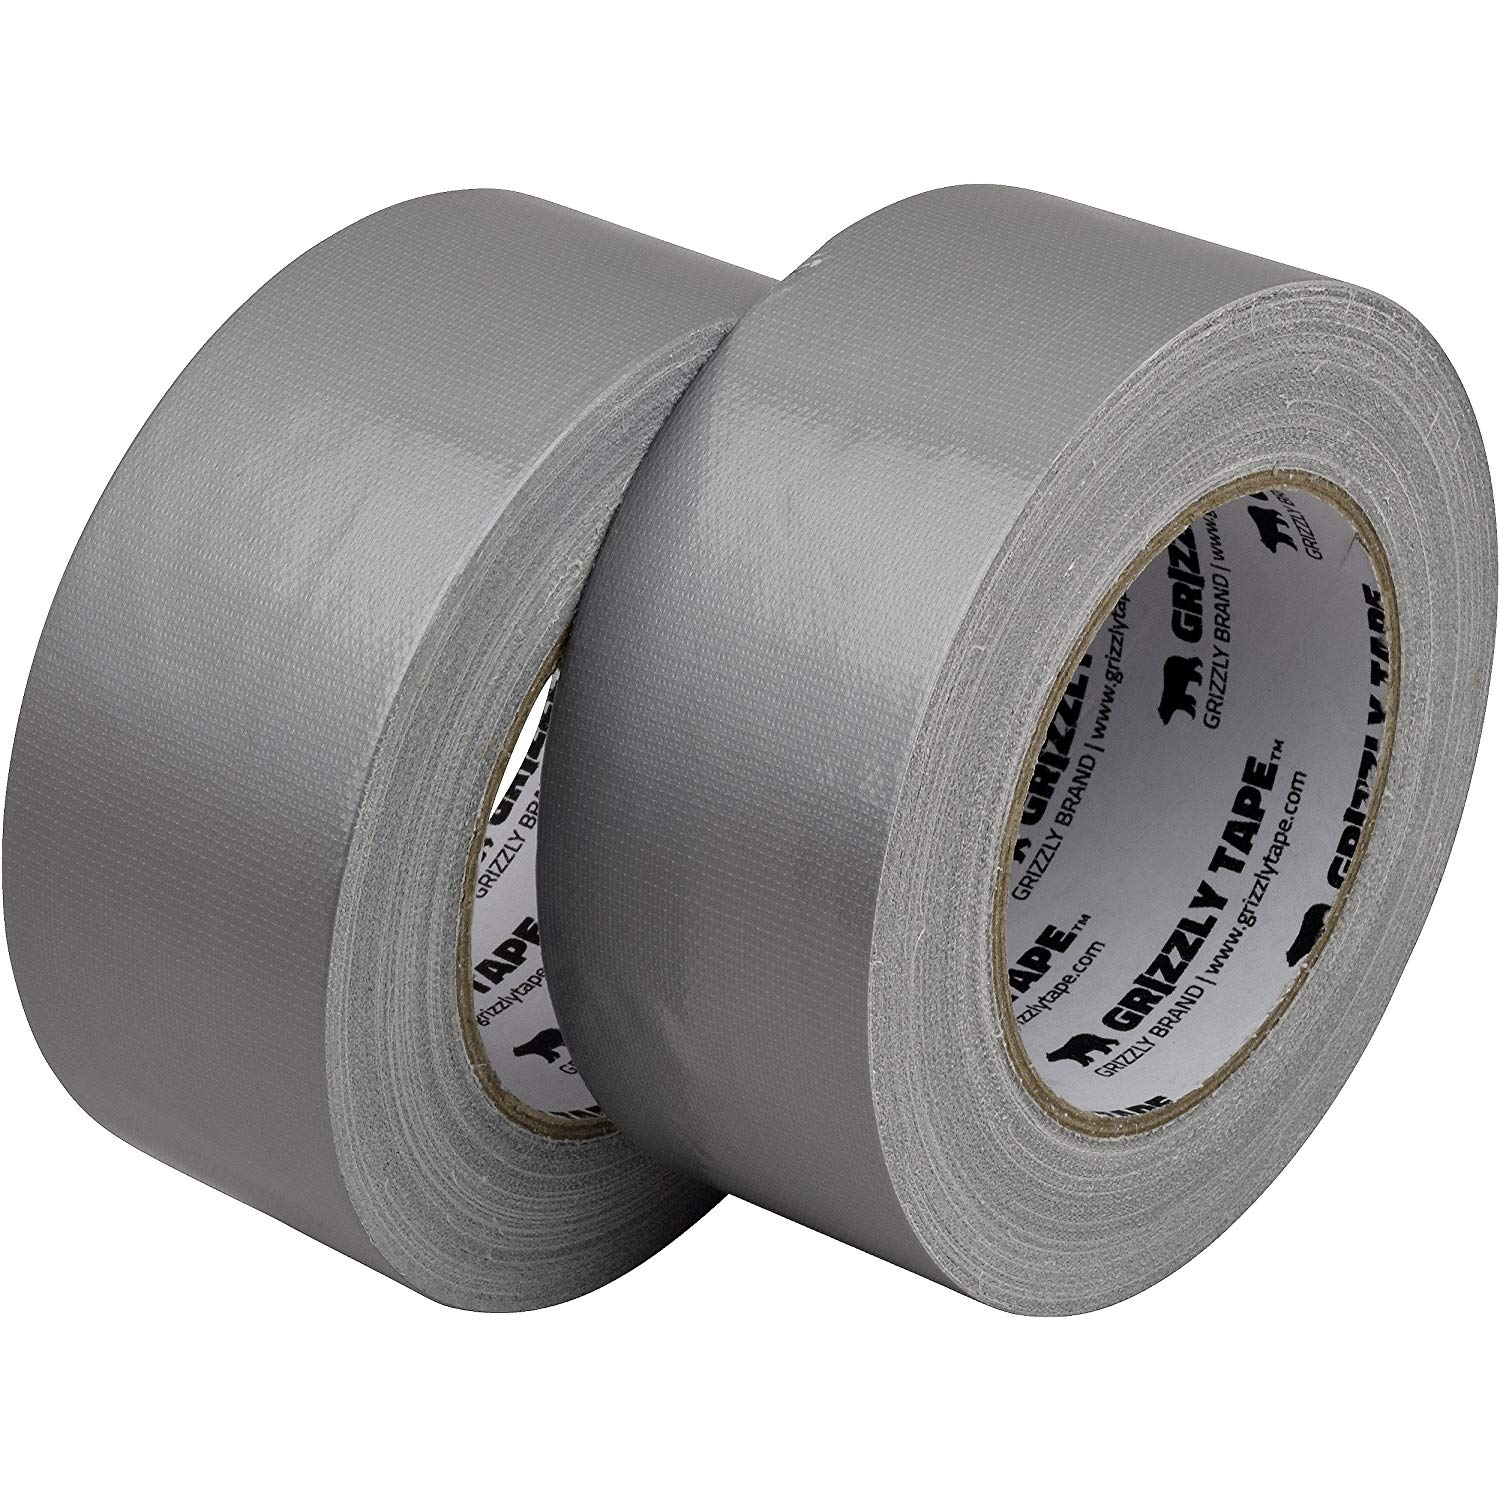 Duct Tape: Grizzly Brand Professional Grade Duct Tape, Silver Color Multi Pack, 11mil Thick (1.88 inch x 30 Yards), 48mm x 28m, 2-Pack Rolls